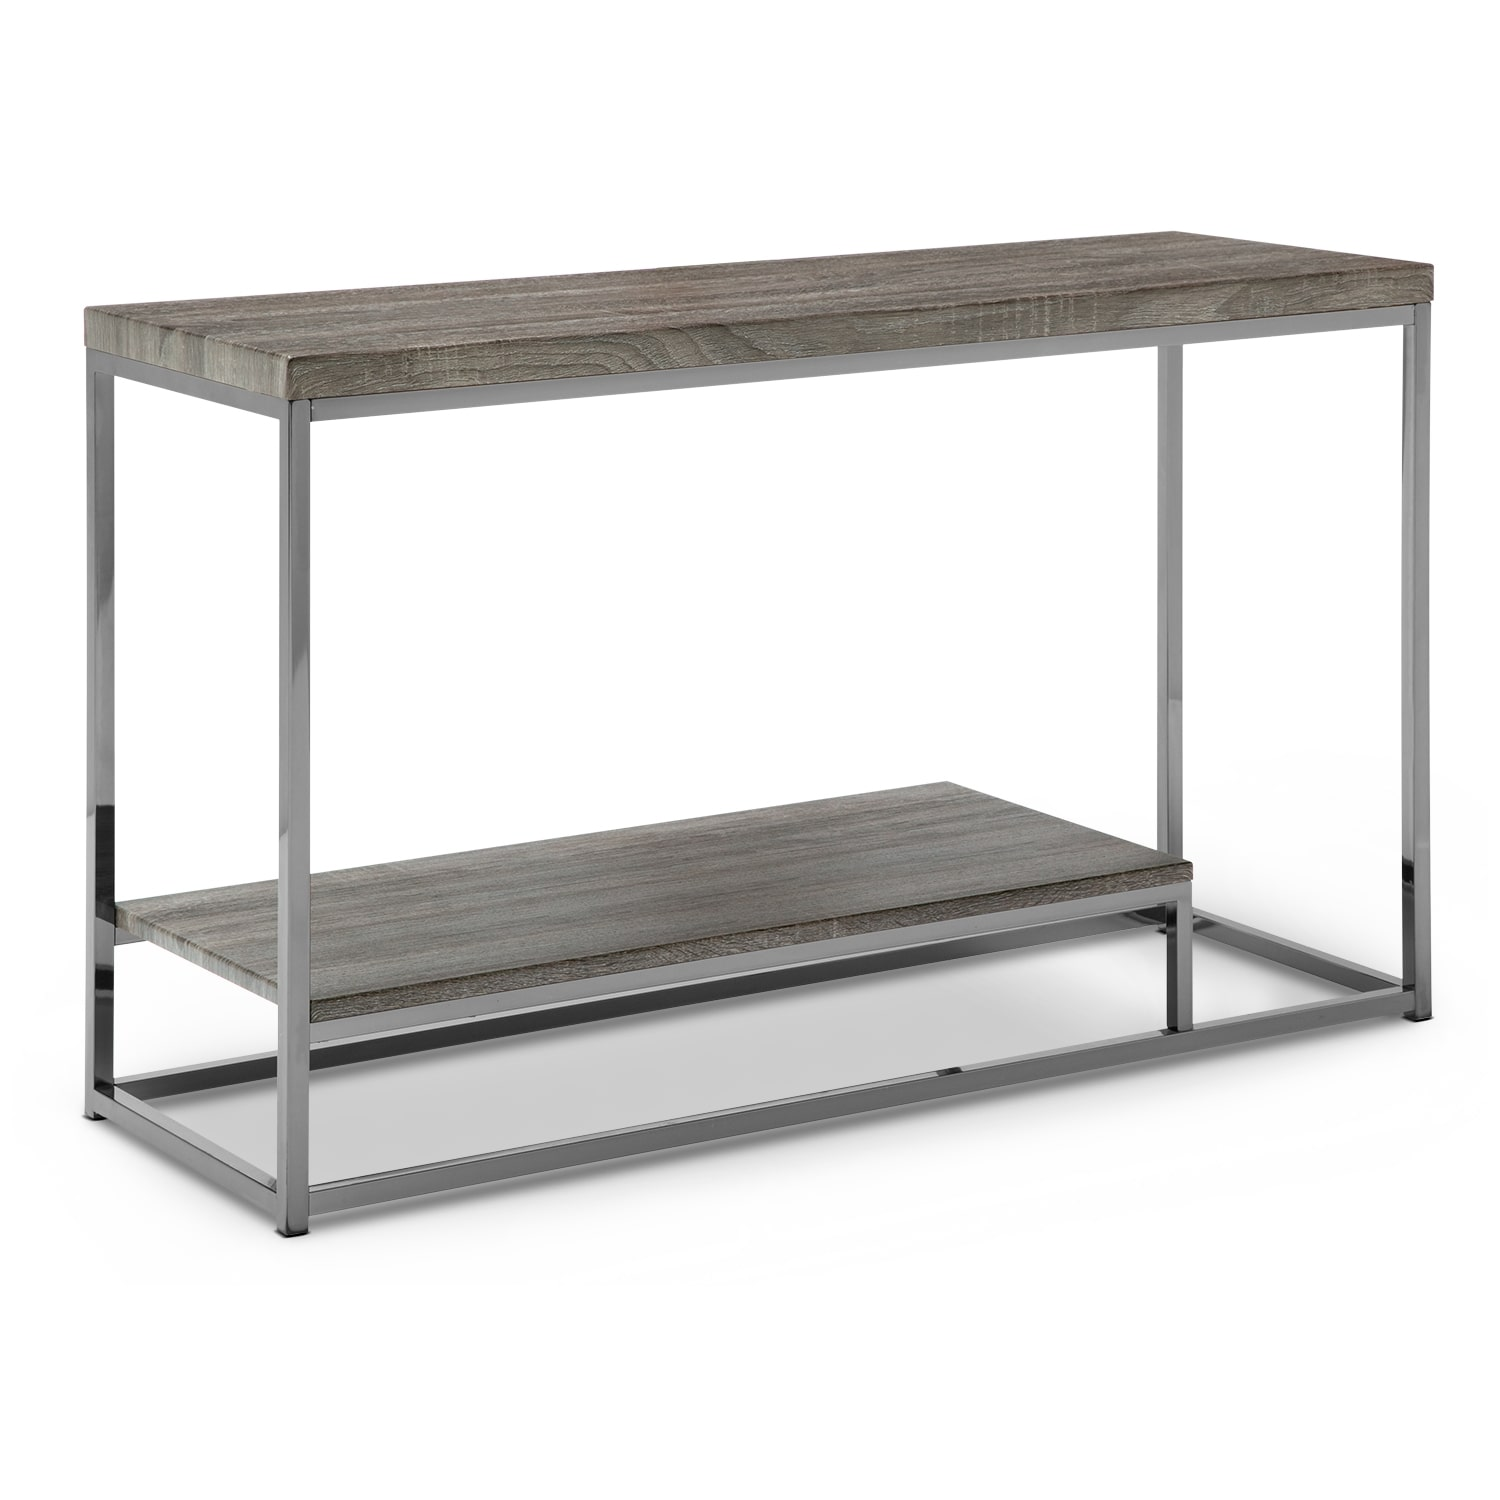 Accent and Occasional Furniture - Cirrus Sofa Table - Gray and Brown